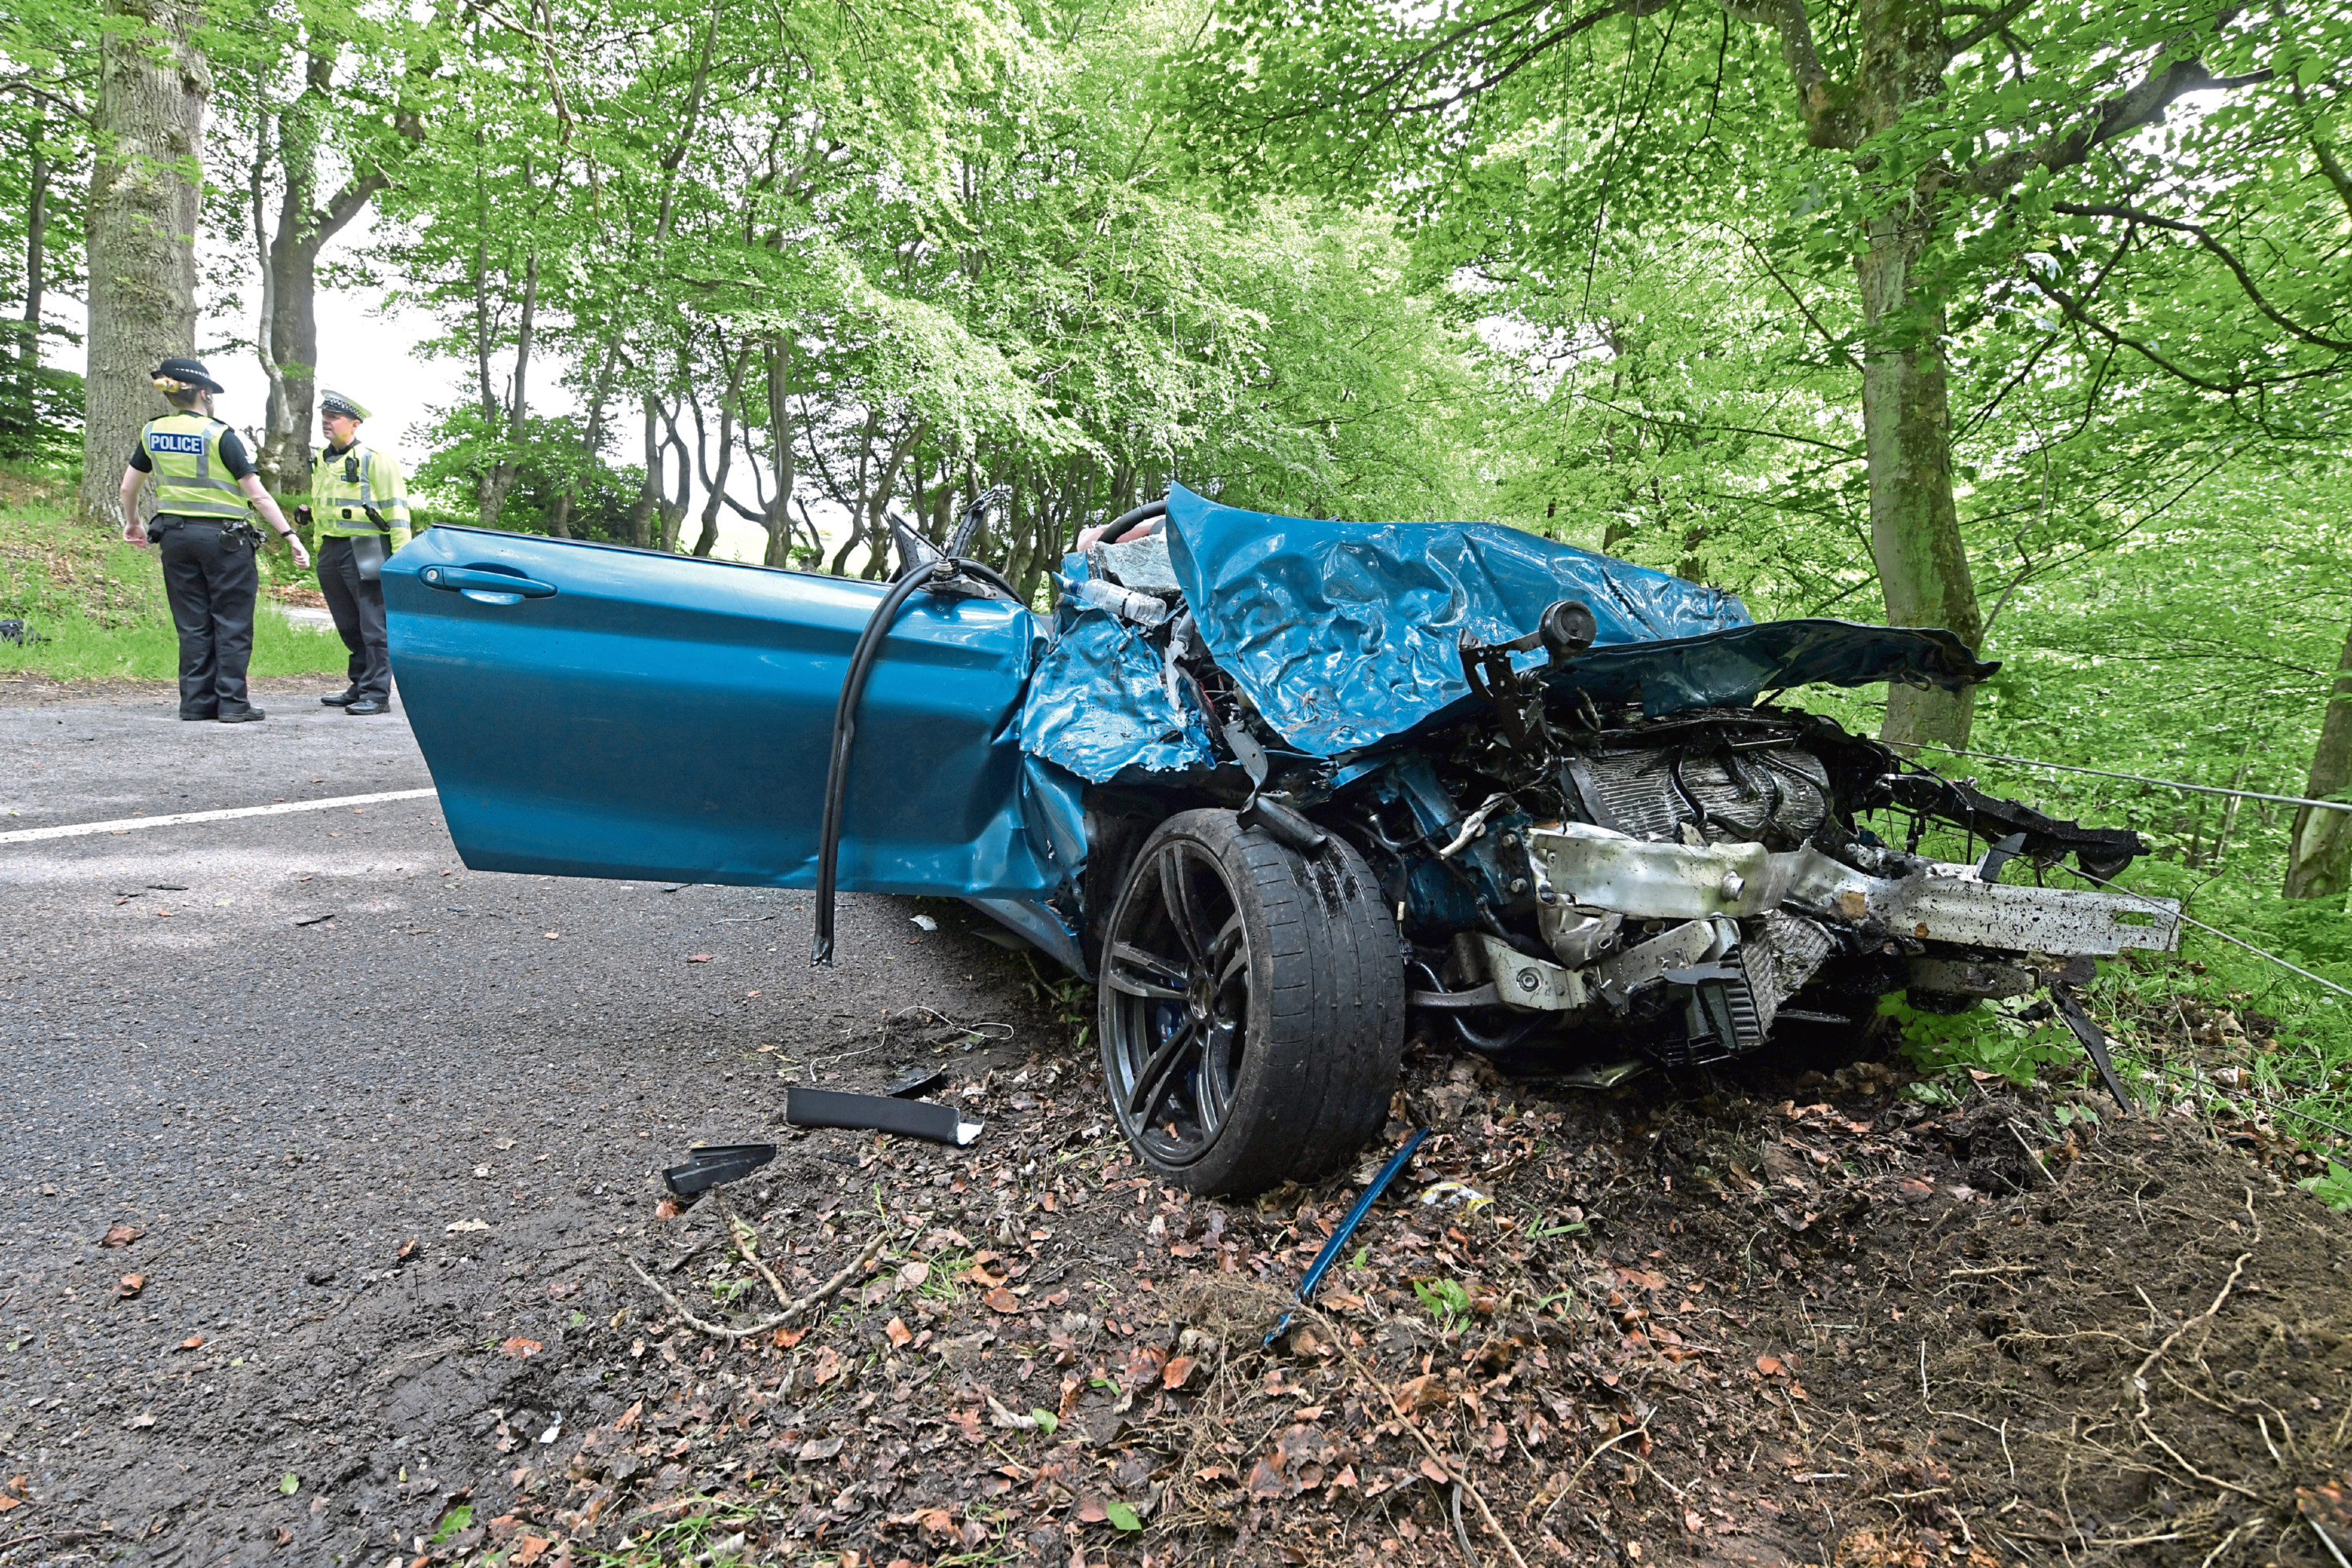 Corey McAlpine lost control of his BMW M2 on a series of bends